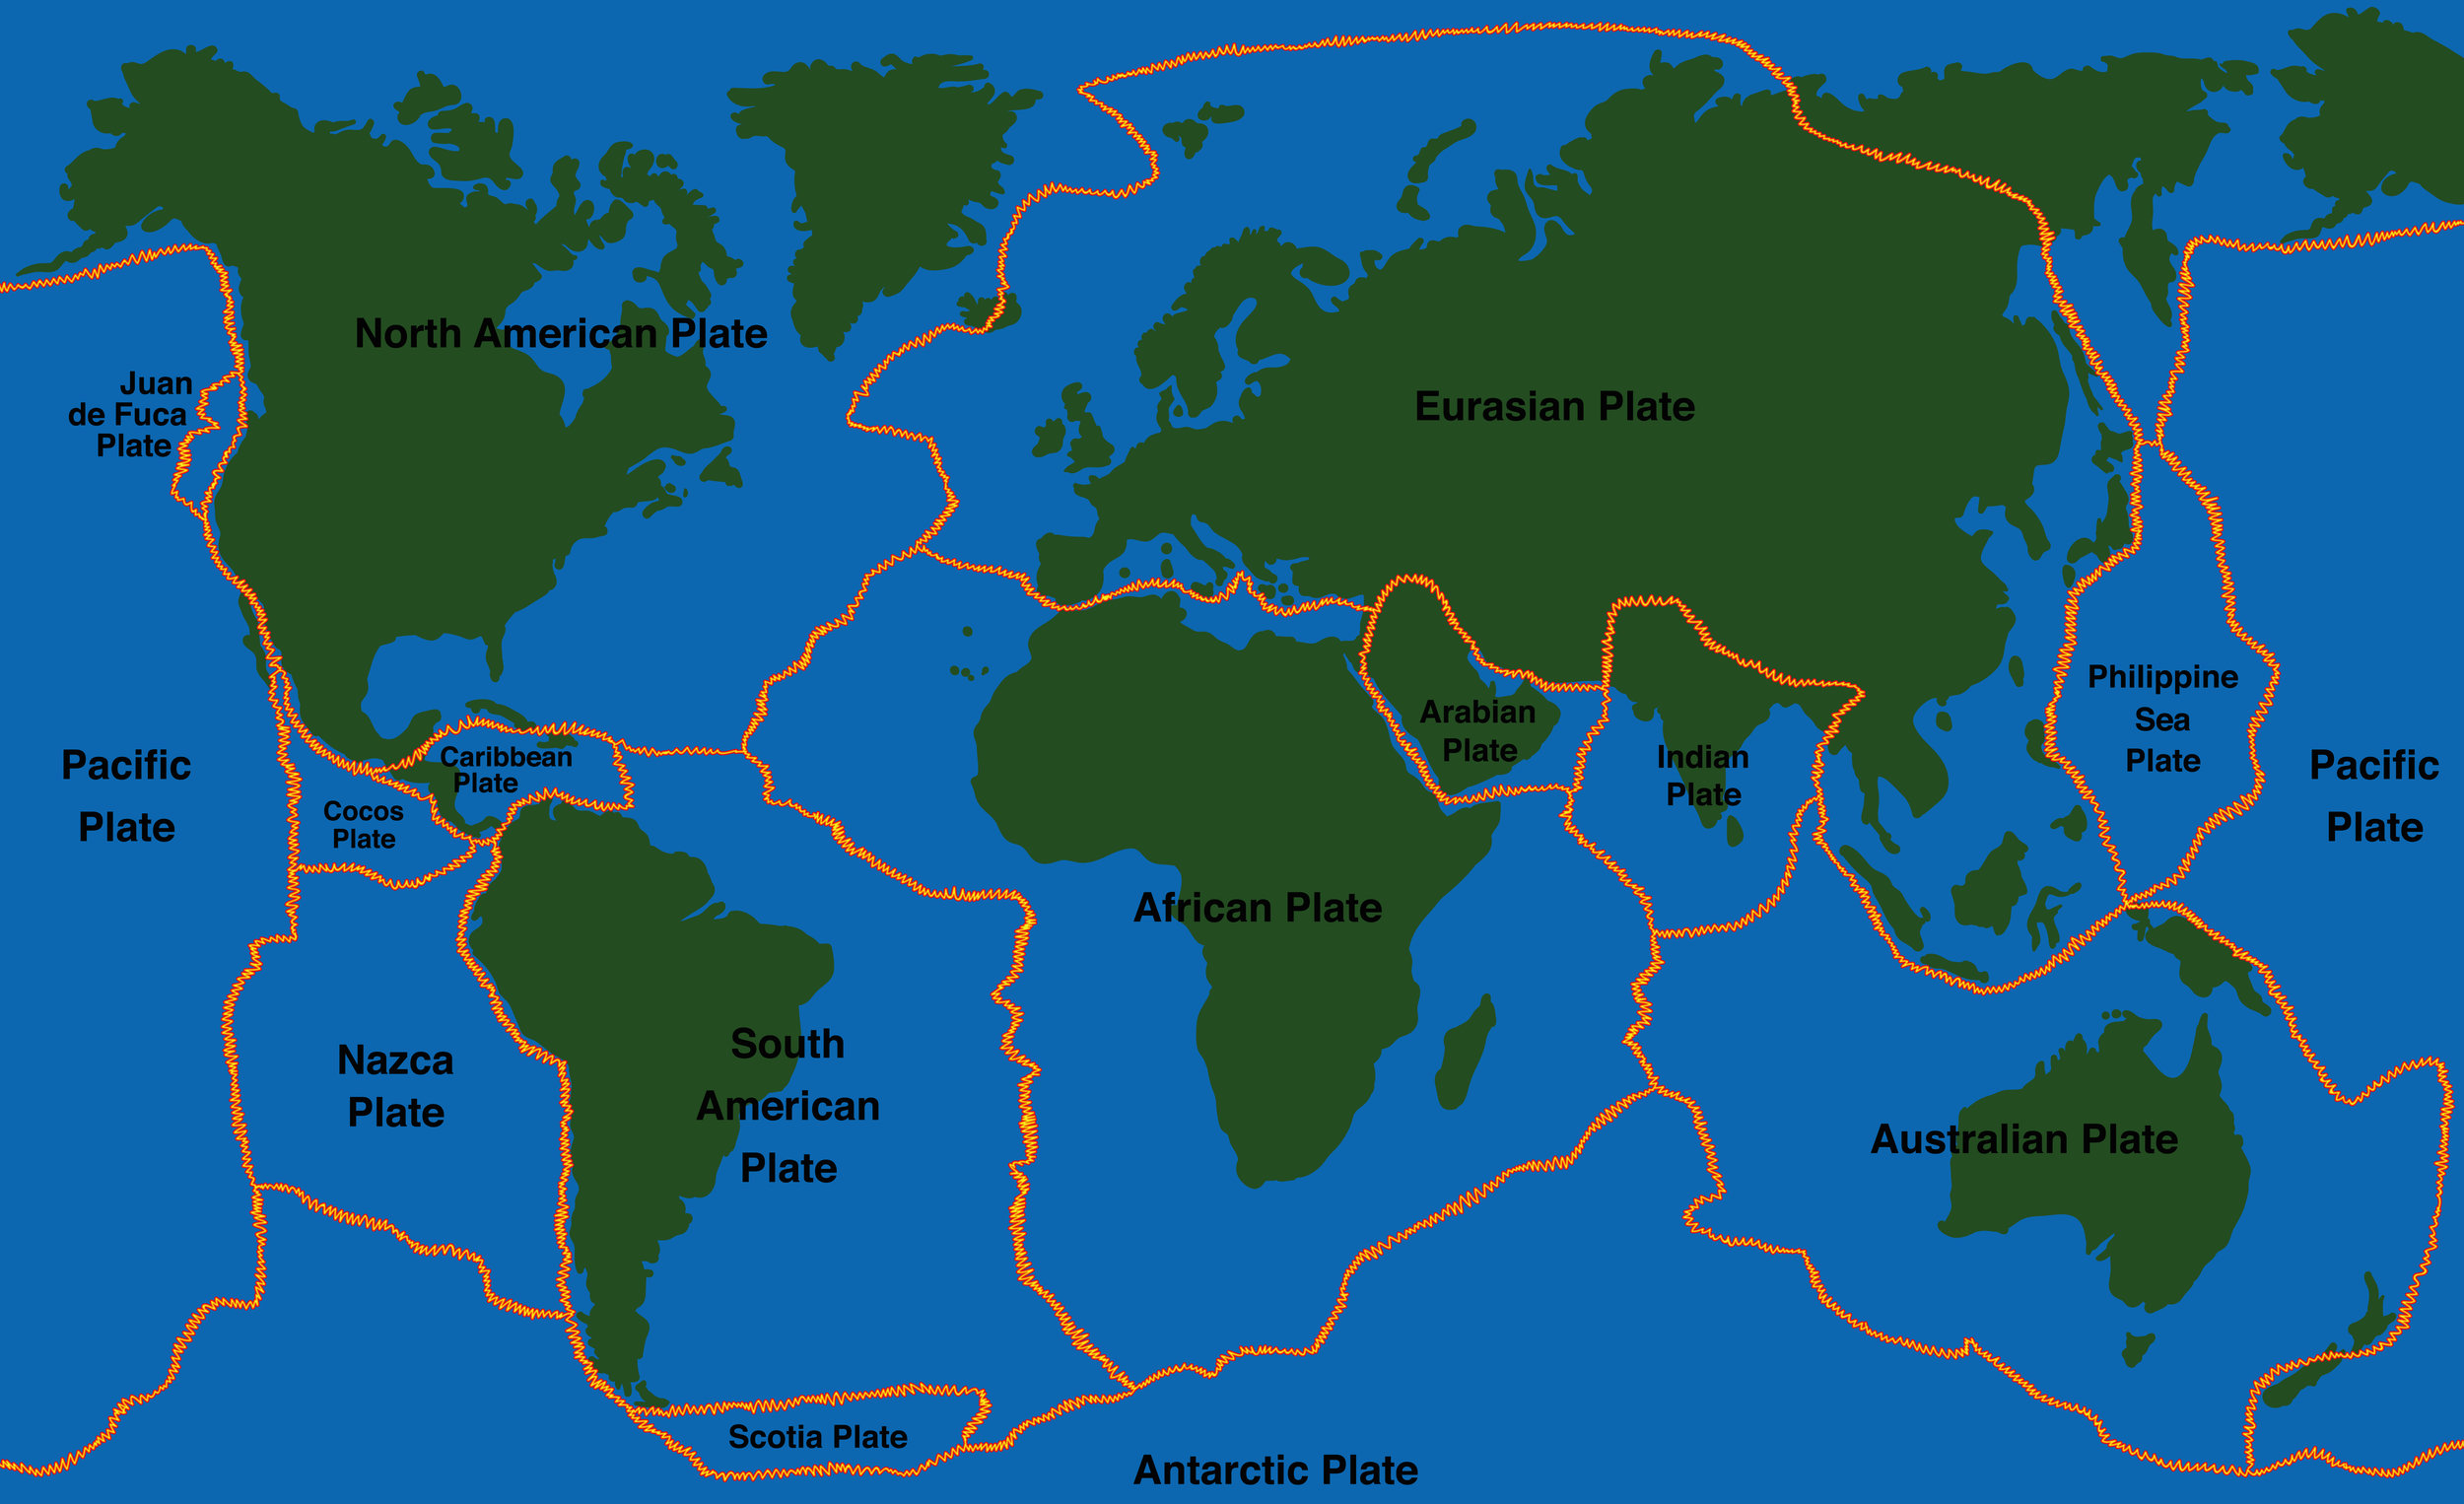 The surface of the Earth is not smooth. The crust of the Earth is made up of plates that are like puzzle pieces.